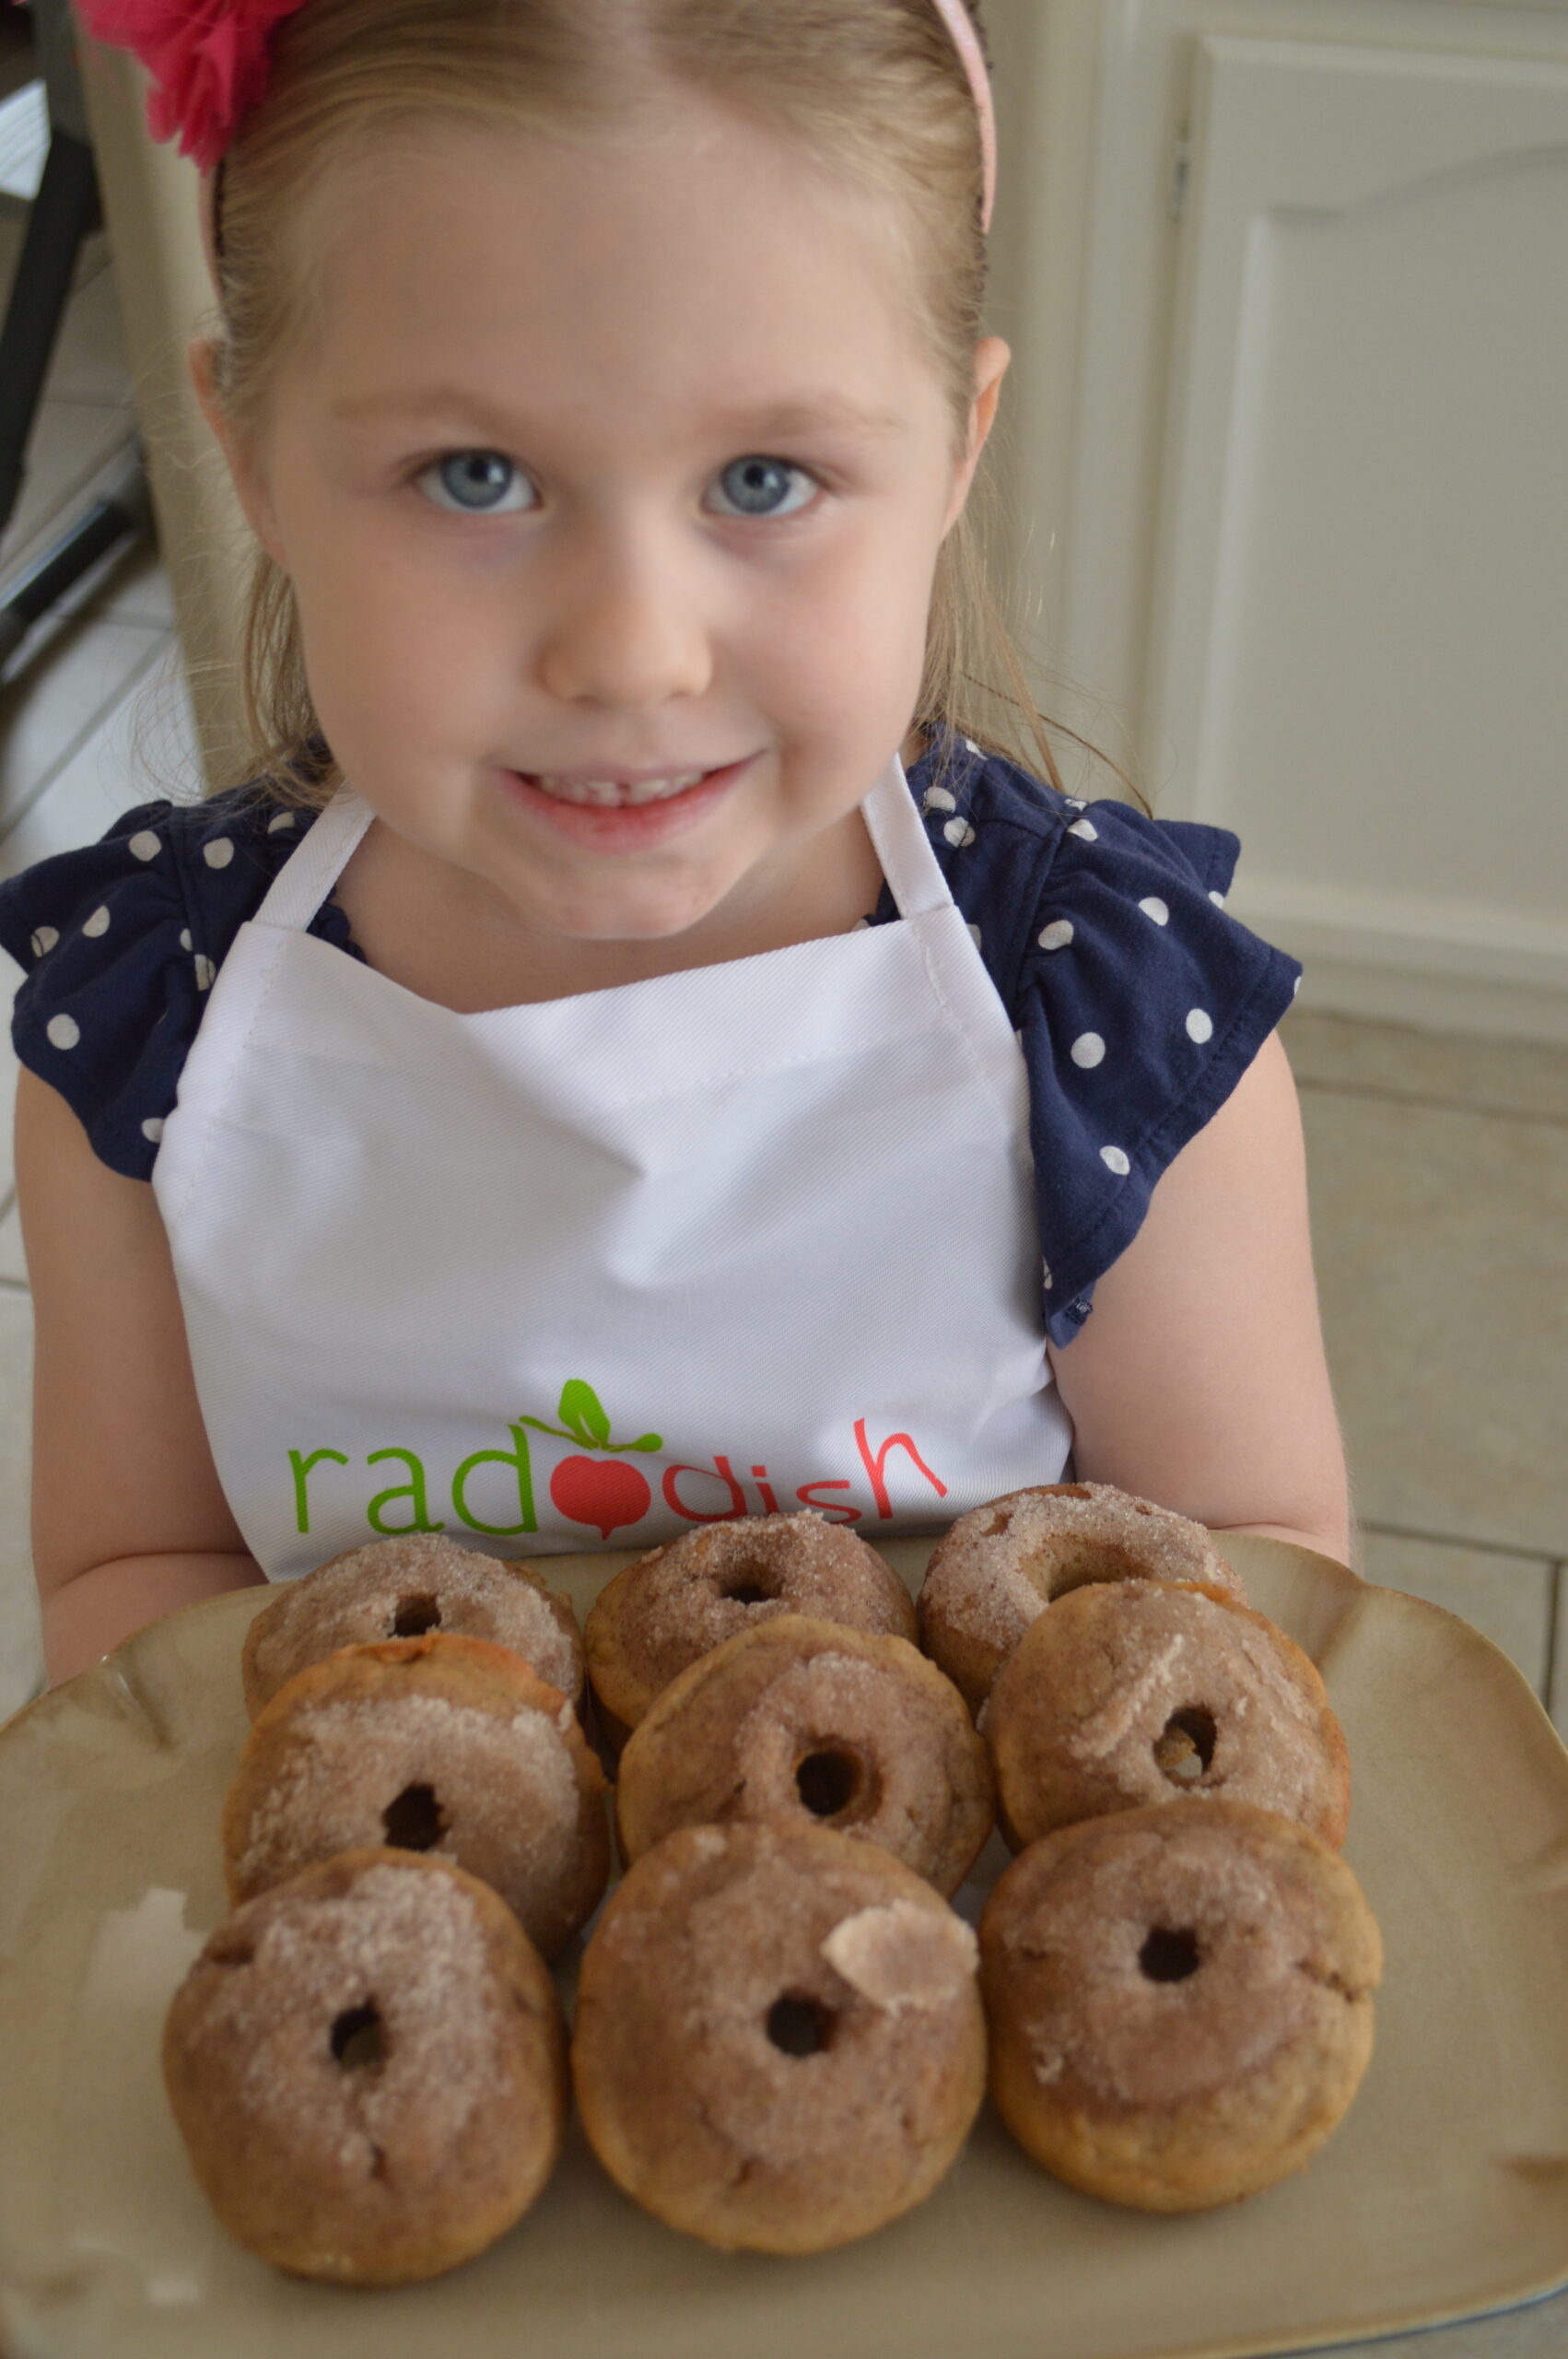 kid holding raddish kids donuts kit